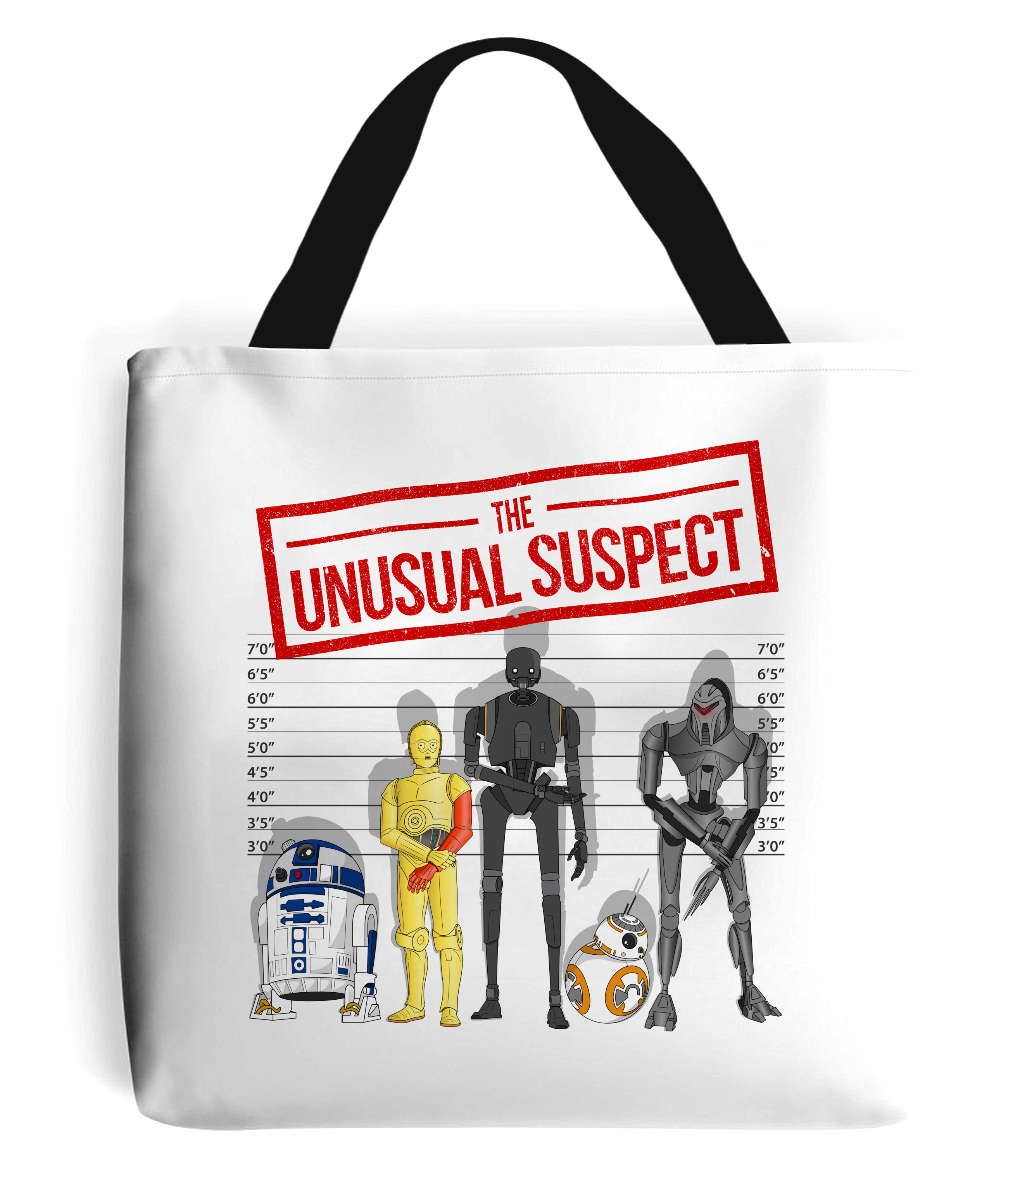 battlestar galactica star wars tote bag